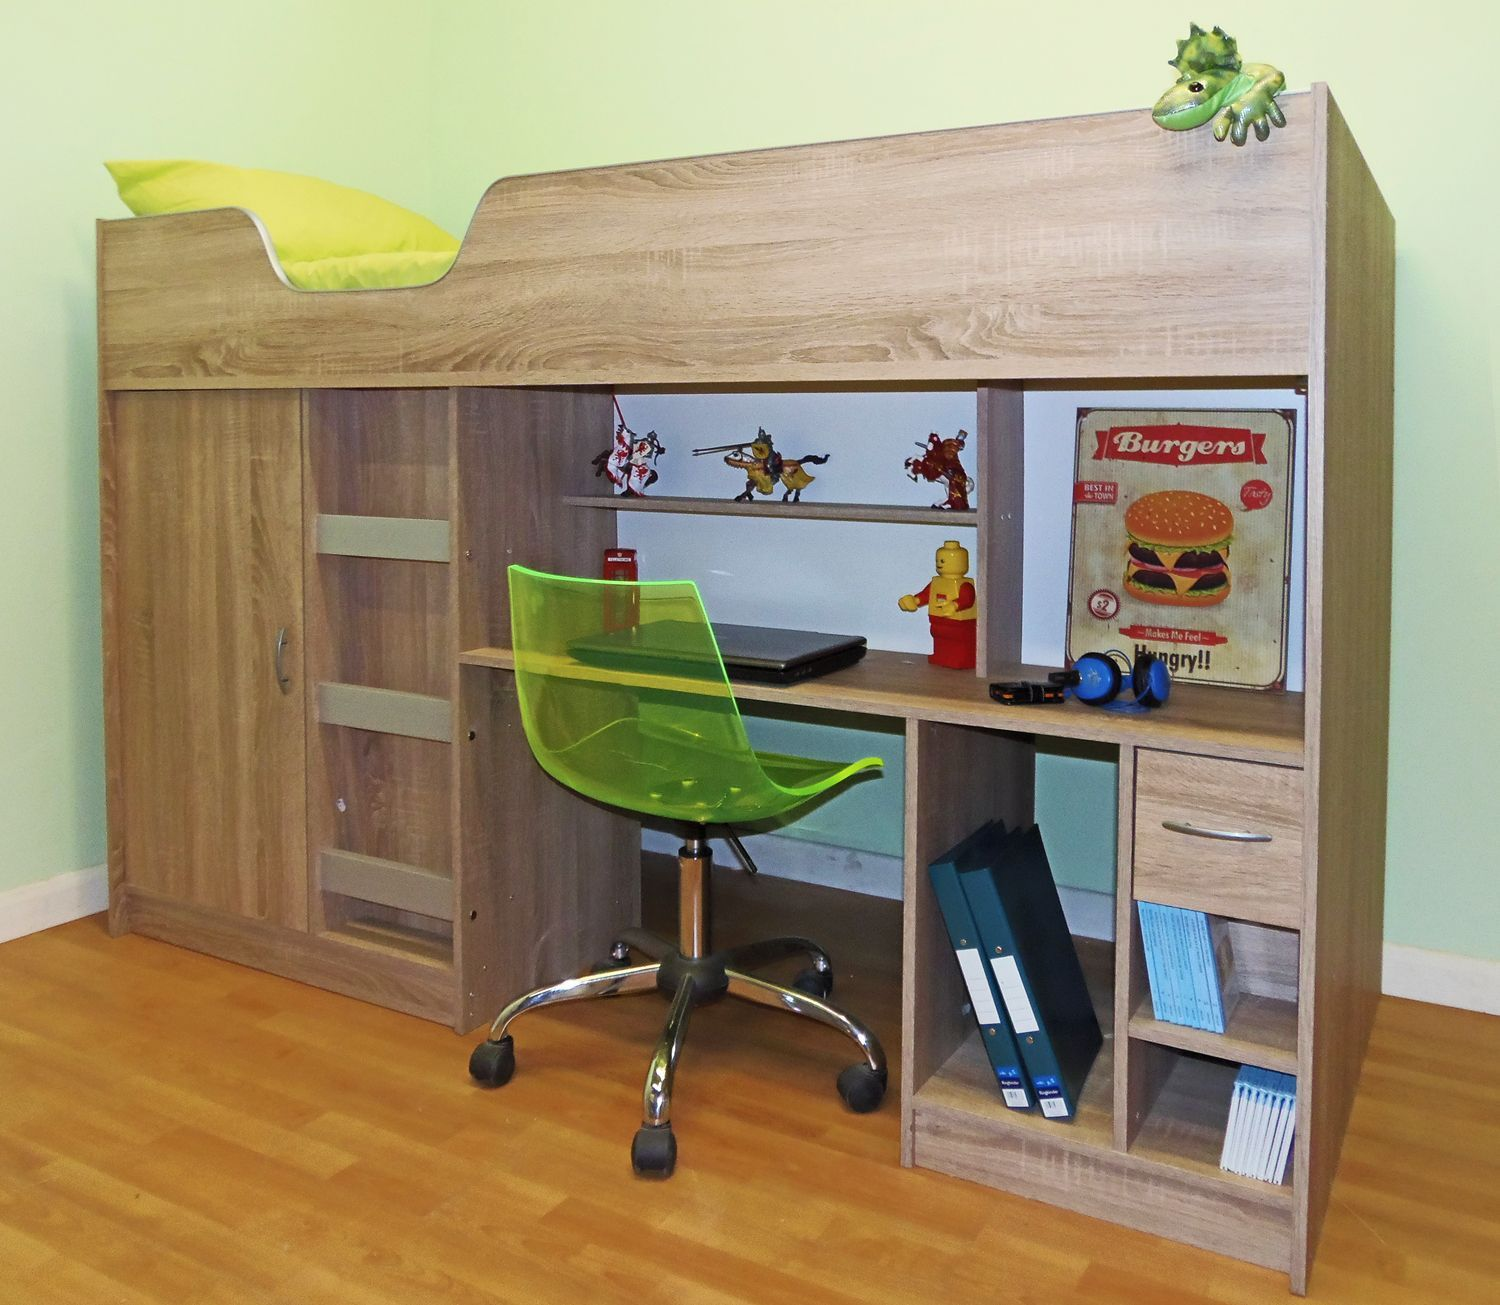 High sleeper loft style cabin bed with hideaway futon bed rutland - Childrens High Sleeper Cabin Bed With Wardrobe And Desk Ideal For Children From 6